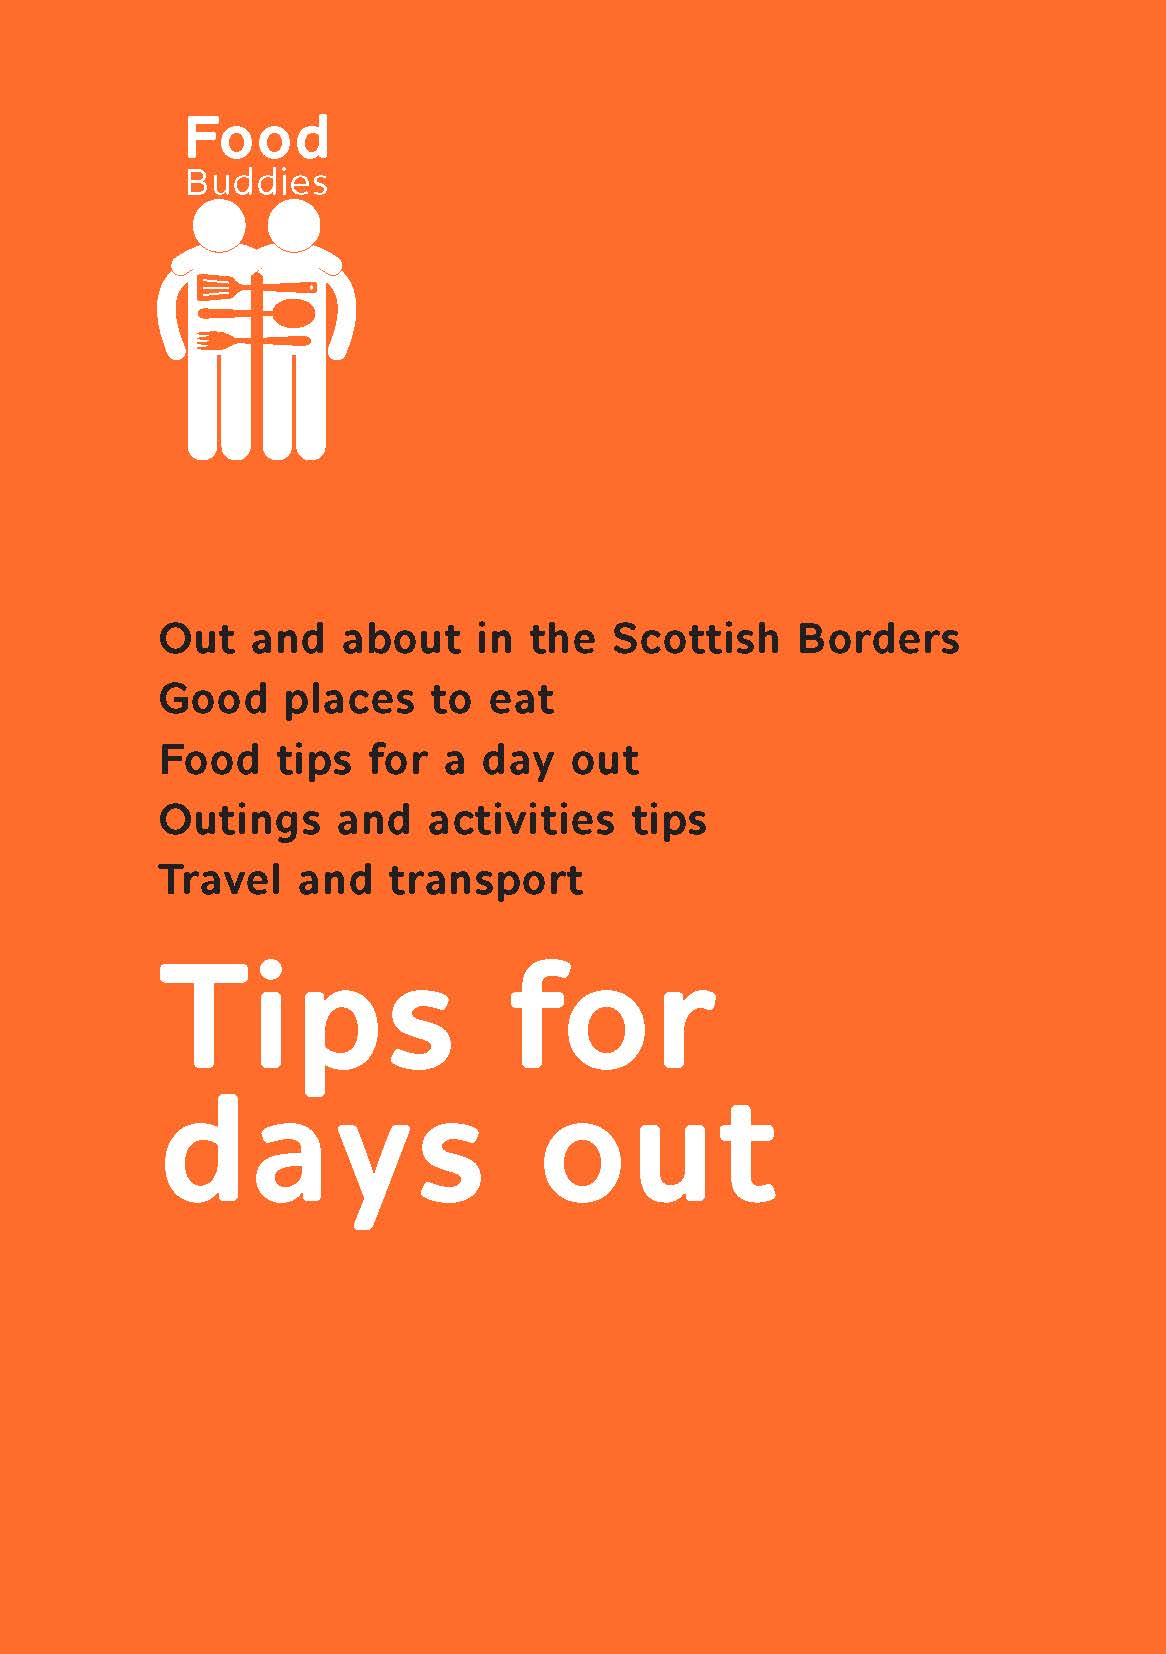 Tips for Days Out